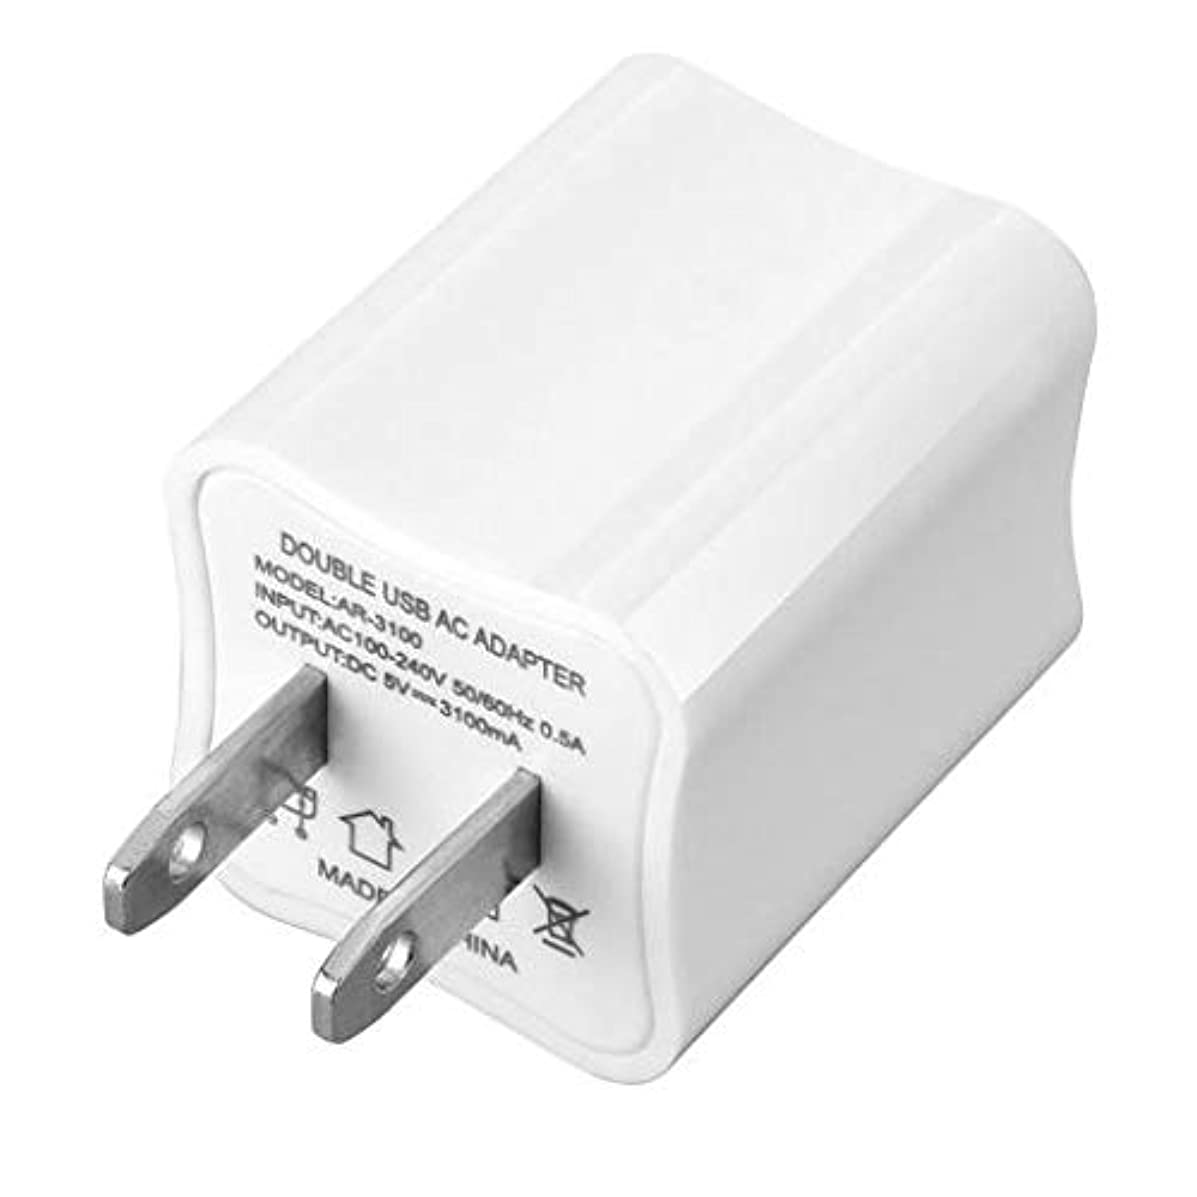 Hanku???? Dual USB Rapid Travel Charger for iPhone 6s Plus and More Smart Phones